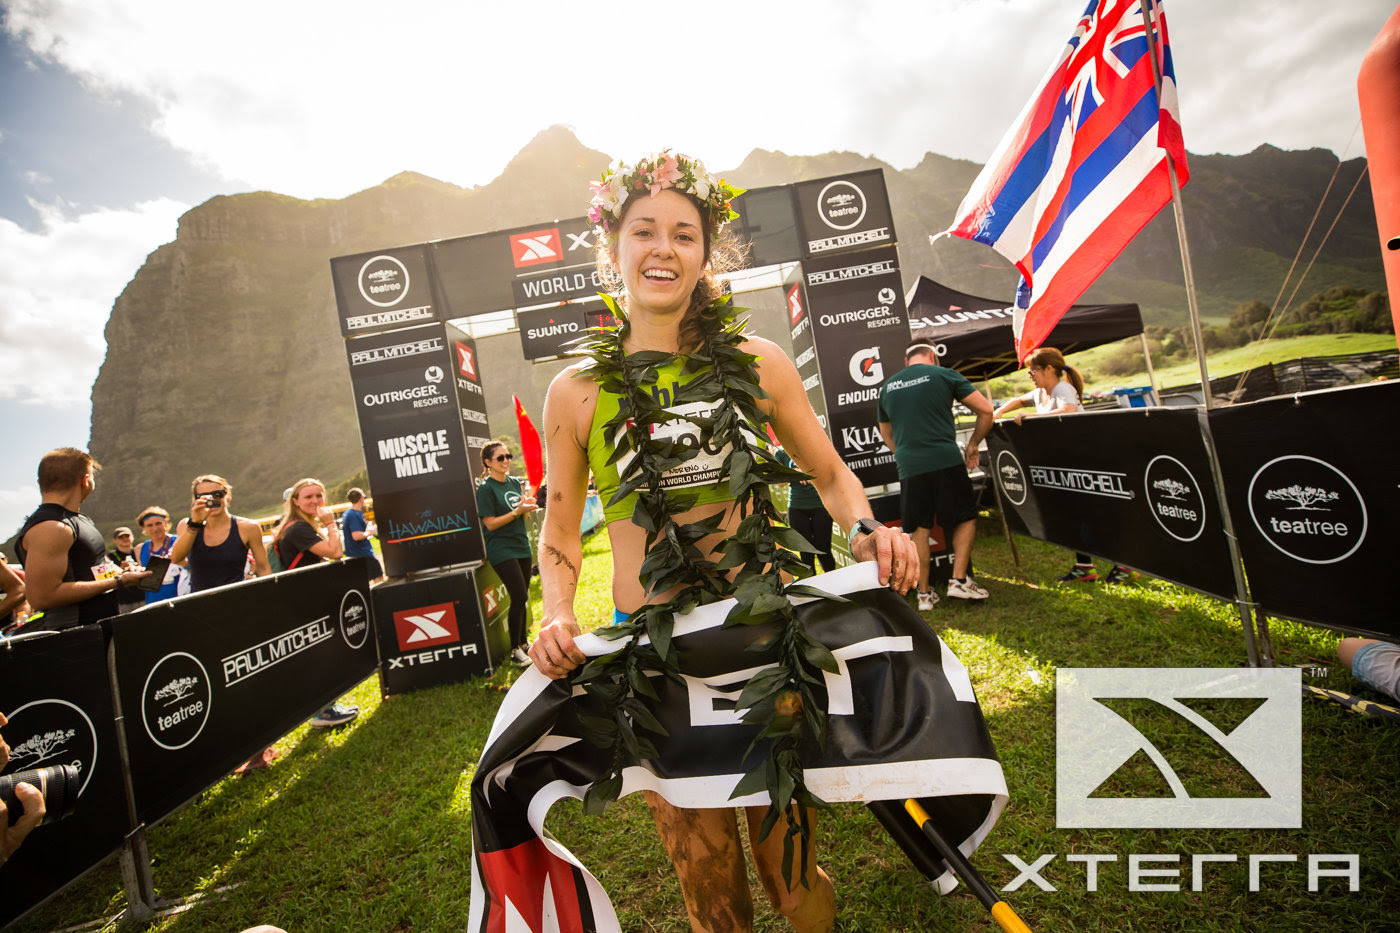 Moreno Win XTERRA Trail Run World Championship